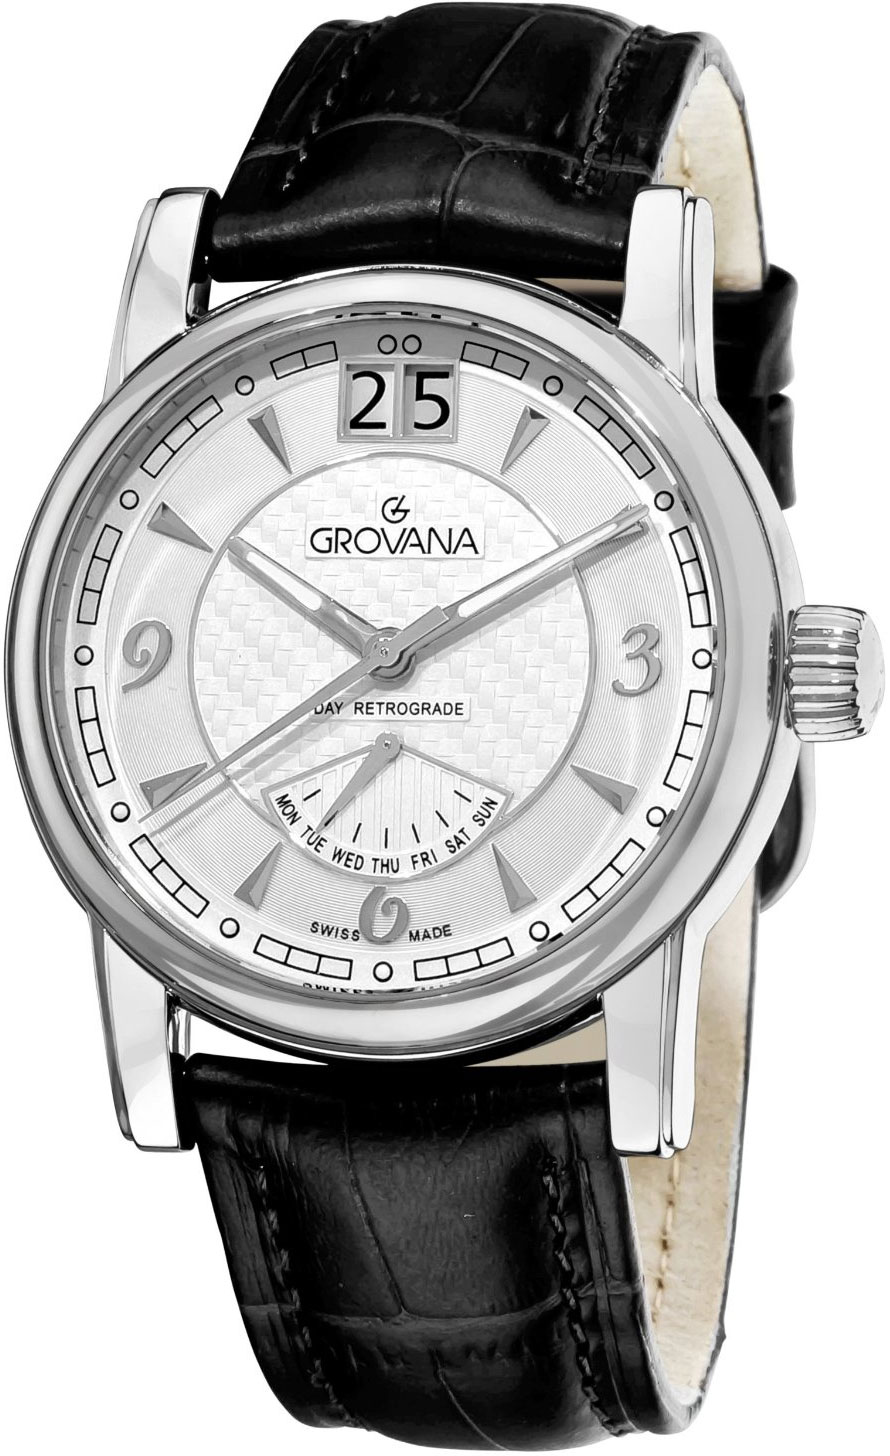 Image of Grovana Day Retrograde Mens Watch Model 1721.1532